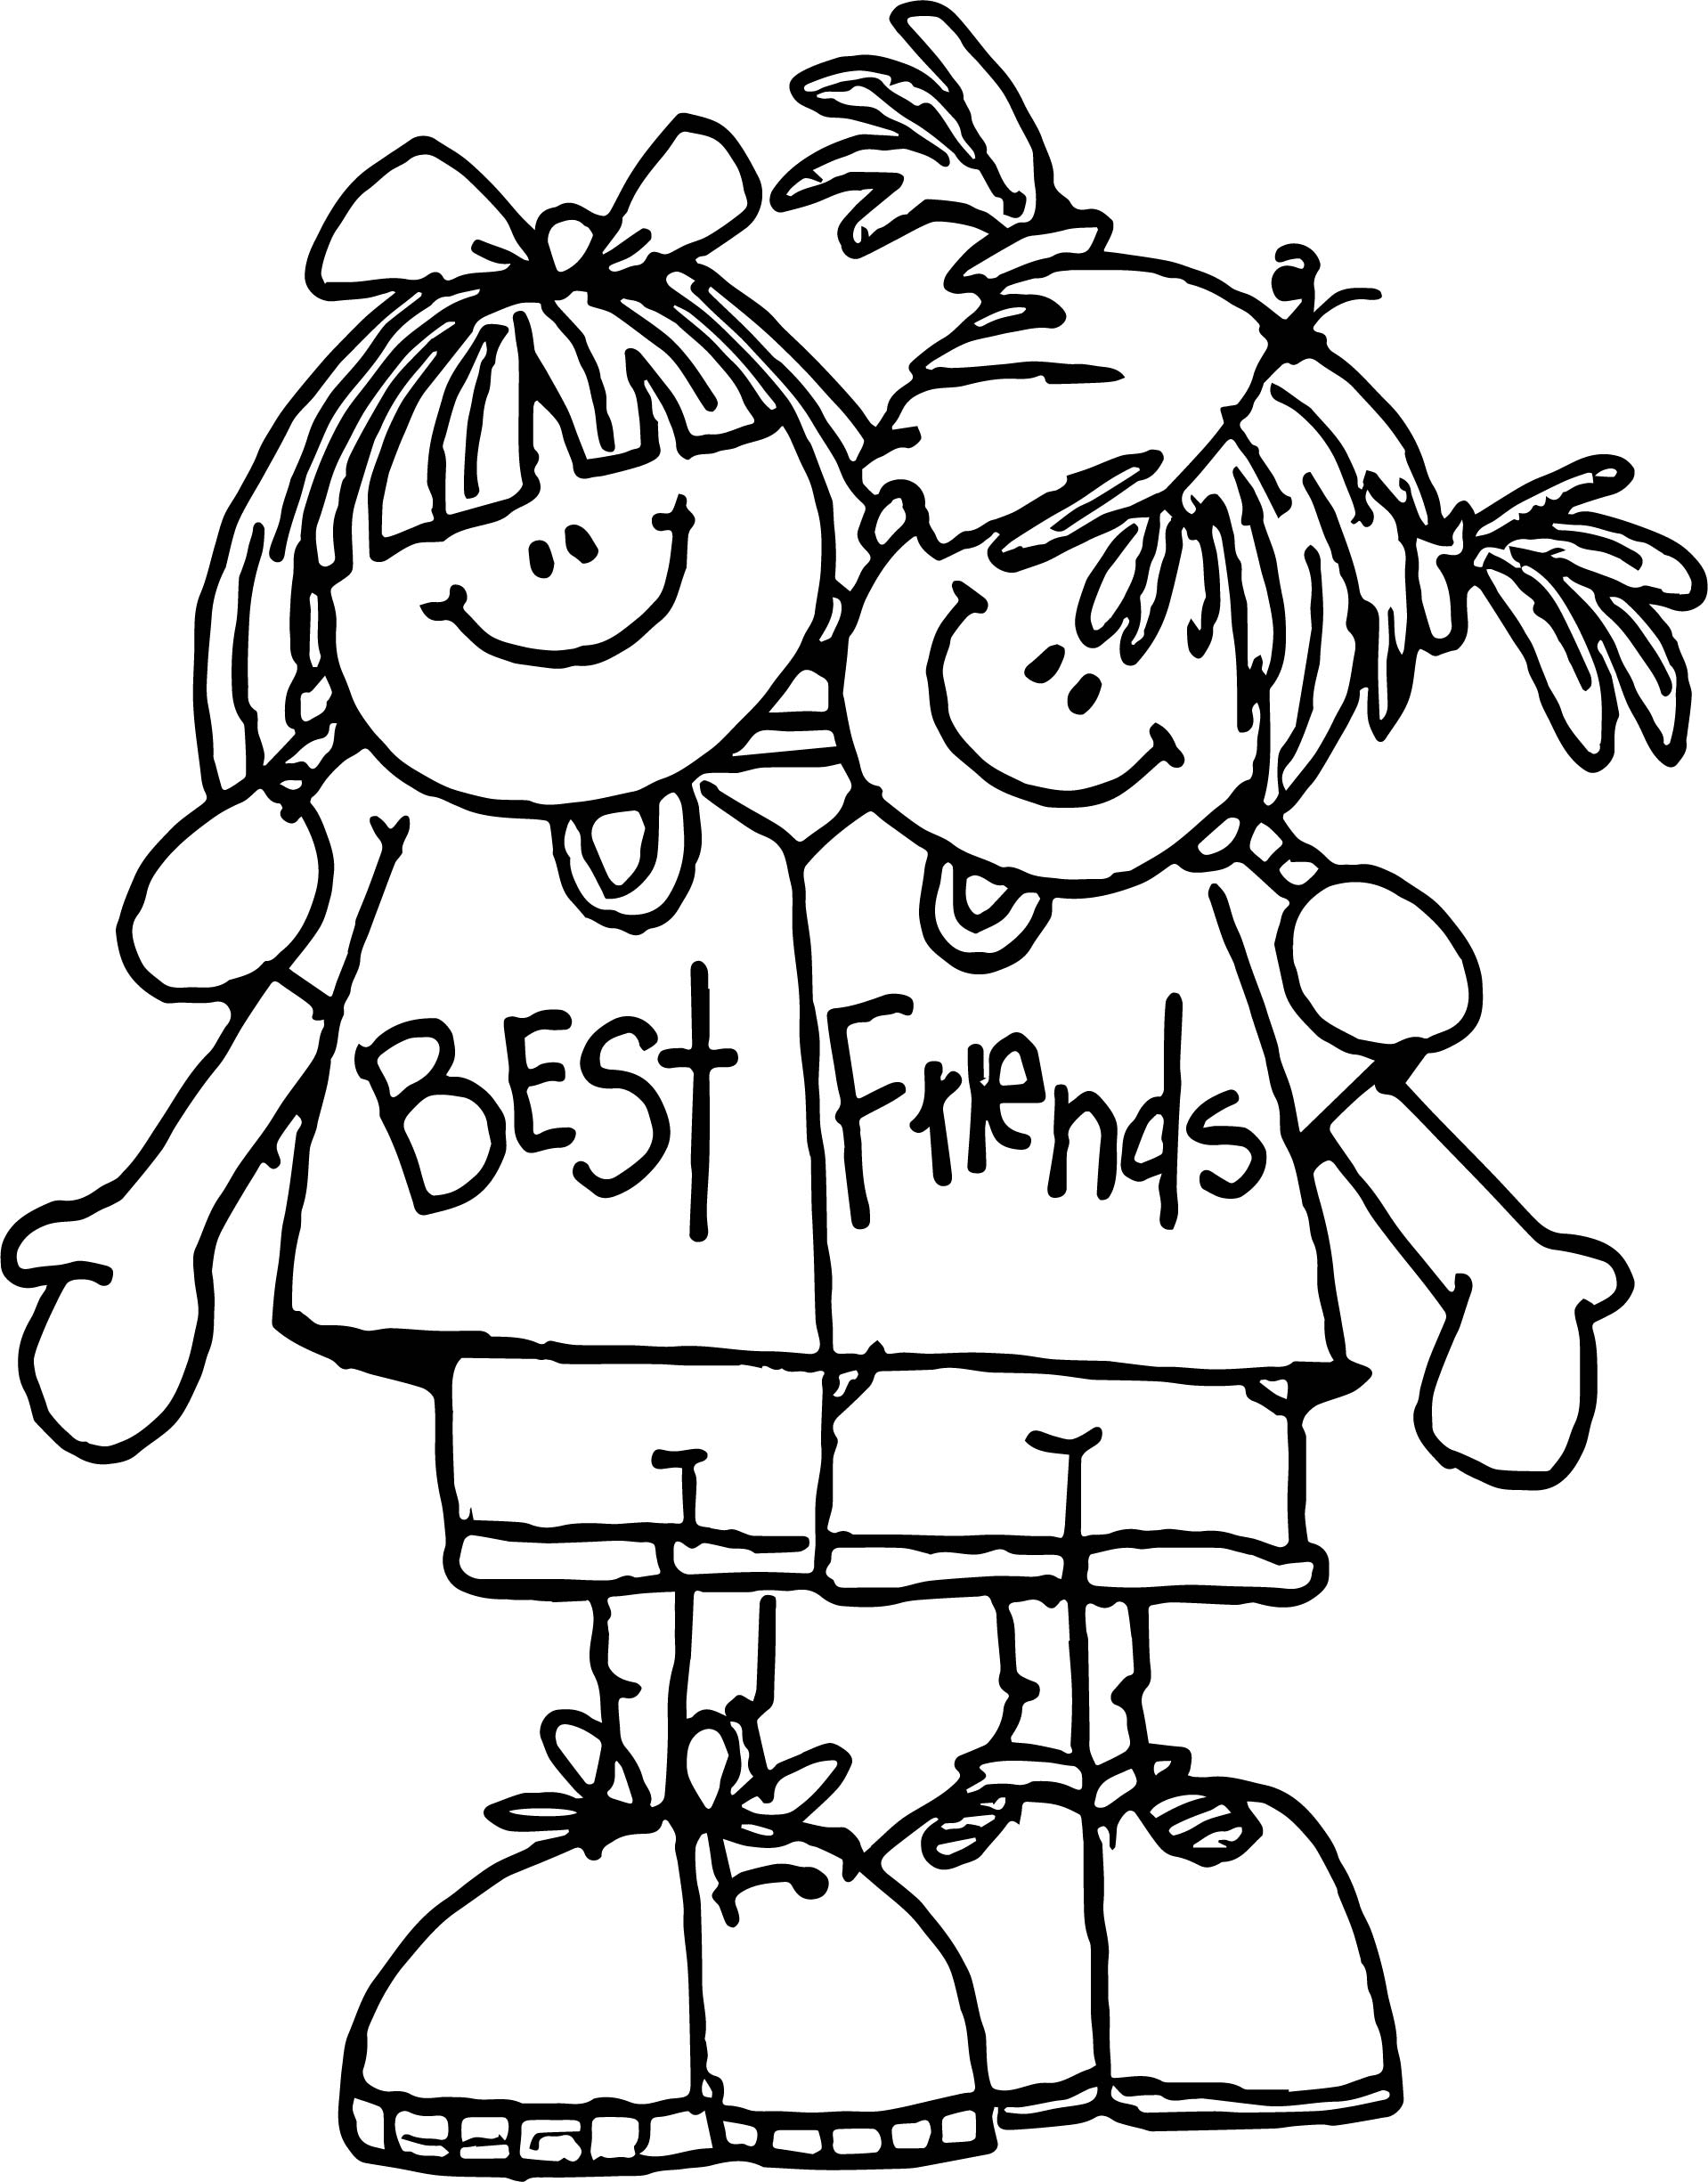 Best Friends Free Printable Coloring Page Wecoloringpage